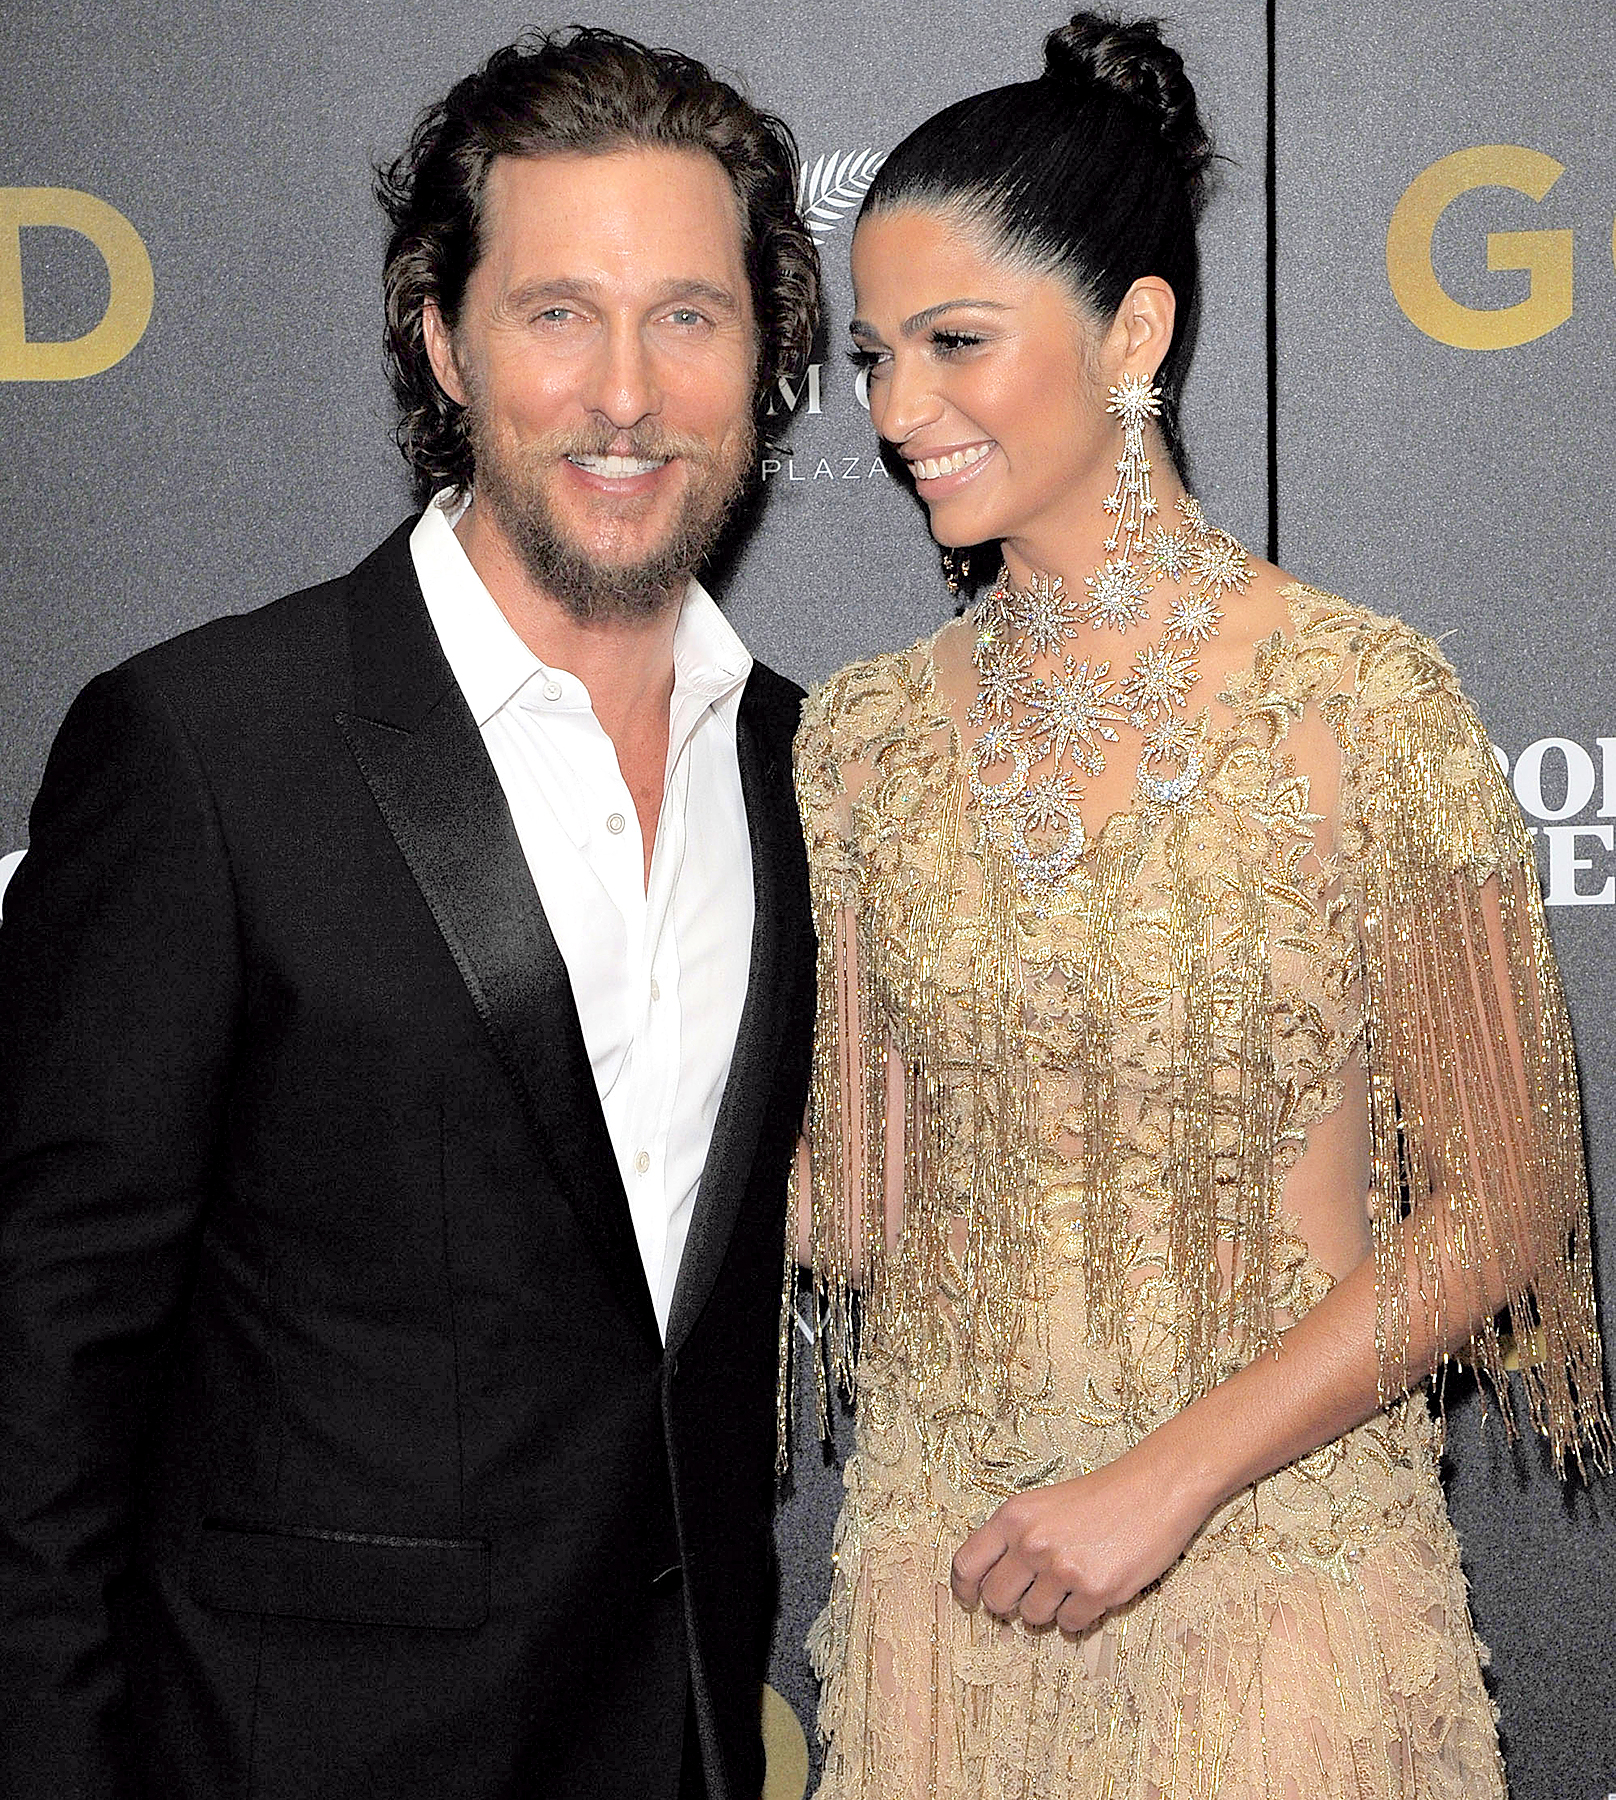 Matthew McConaughey and Camila Alves attend the world premiere of